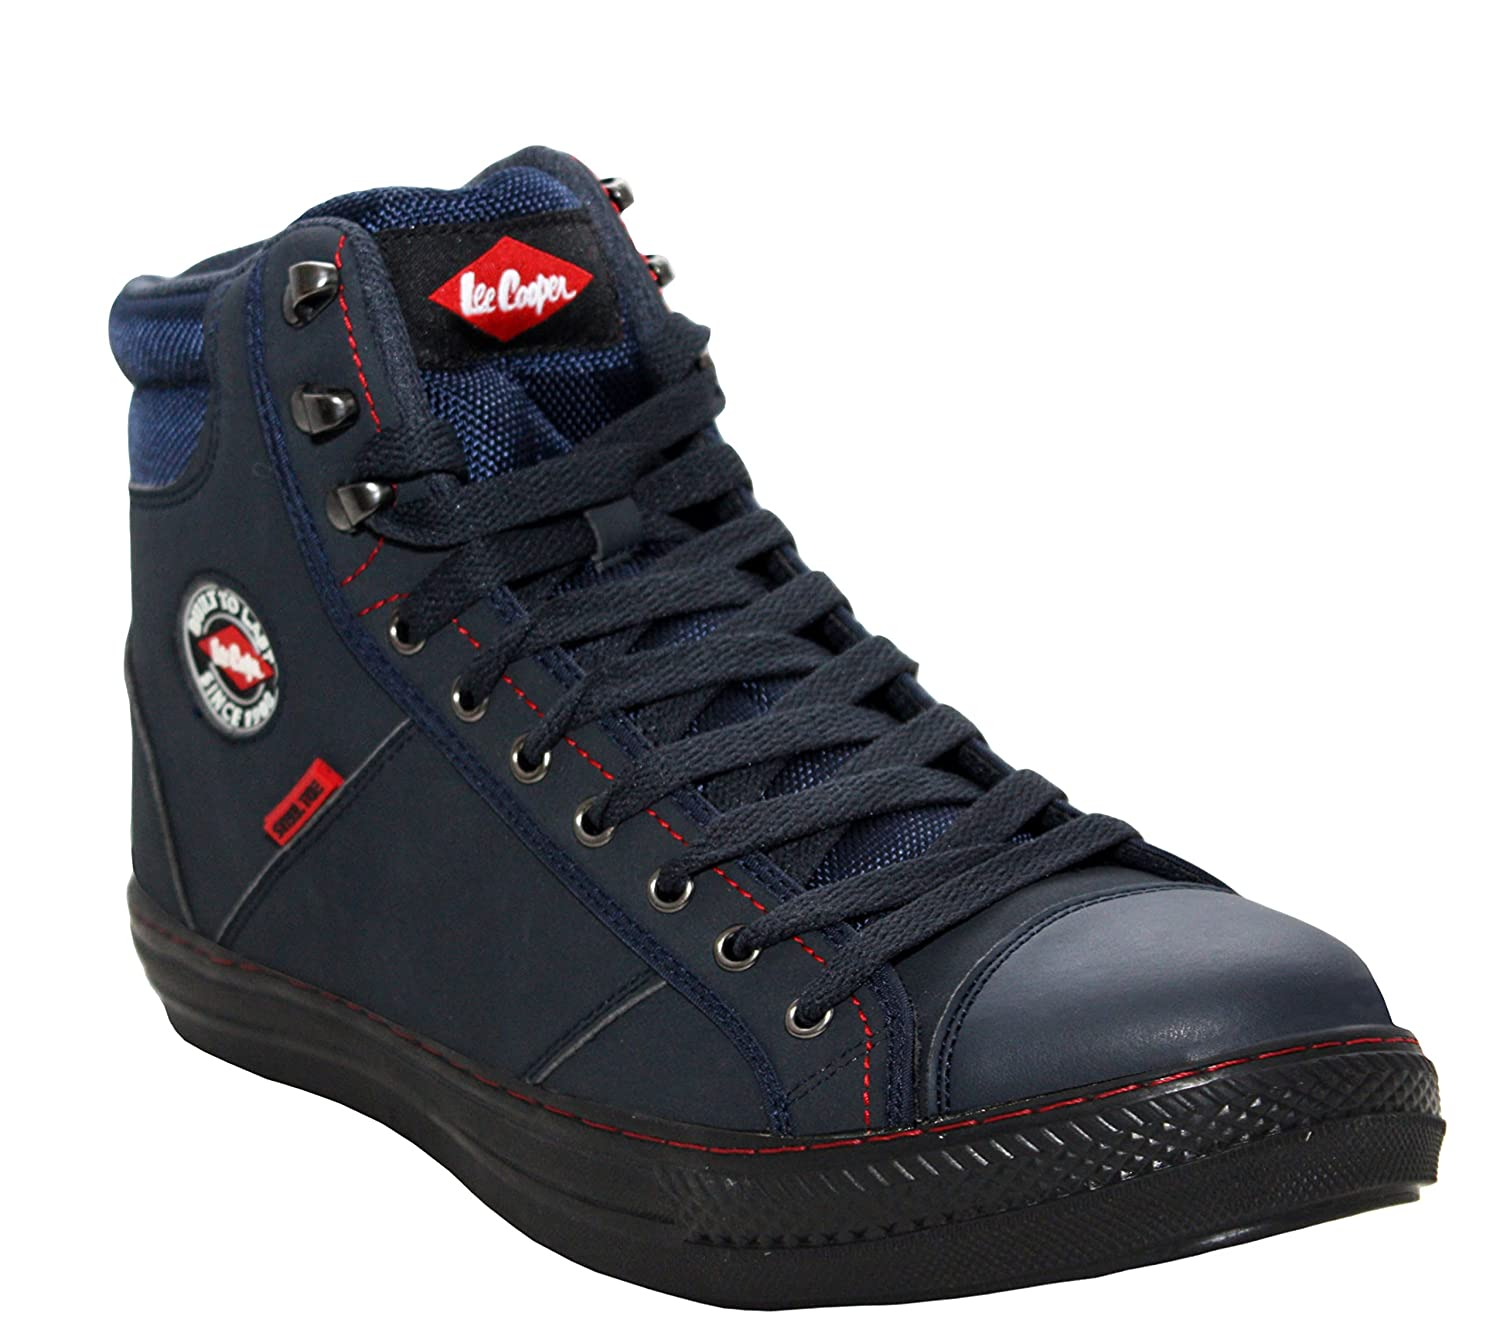 ba29e81d39c Lee Cooper Mens Lightweight Flexible Padded Ankle Collar Steel Toe Cap  Baseball Trainer Industrial Work Safety Shoes UK Sizes 6-12  Amazon.co.uk   Shoes   ...